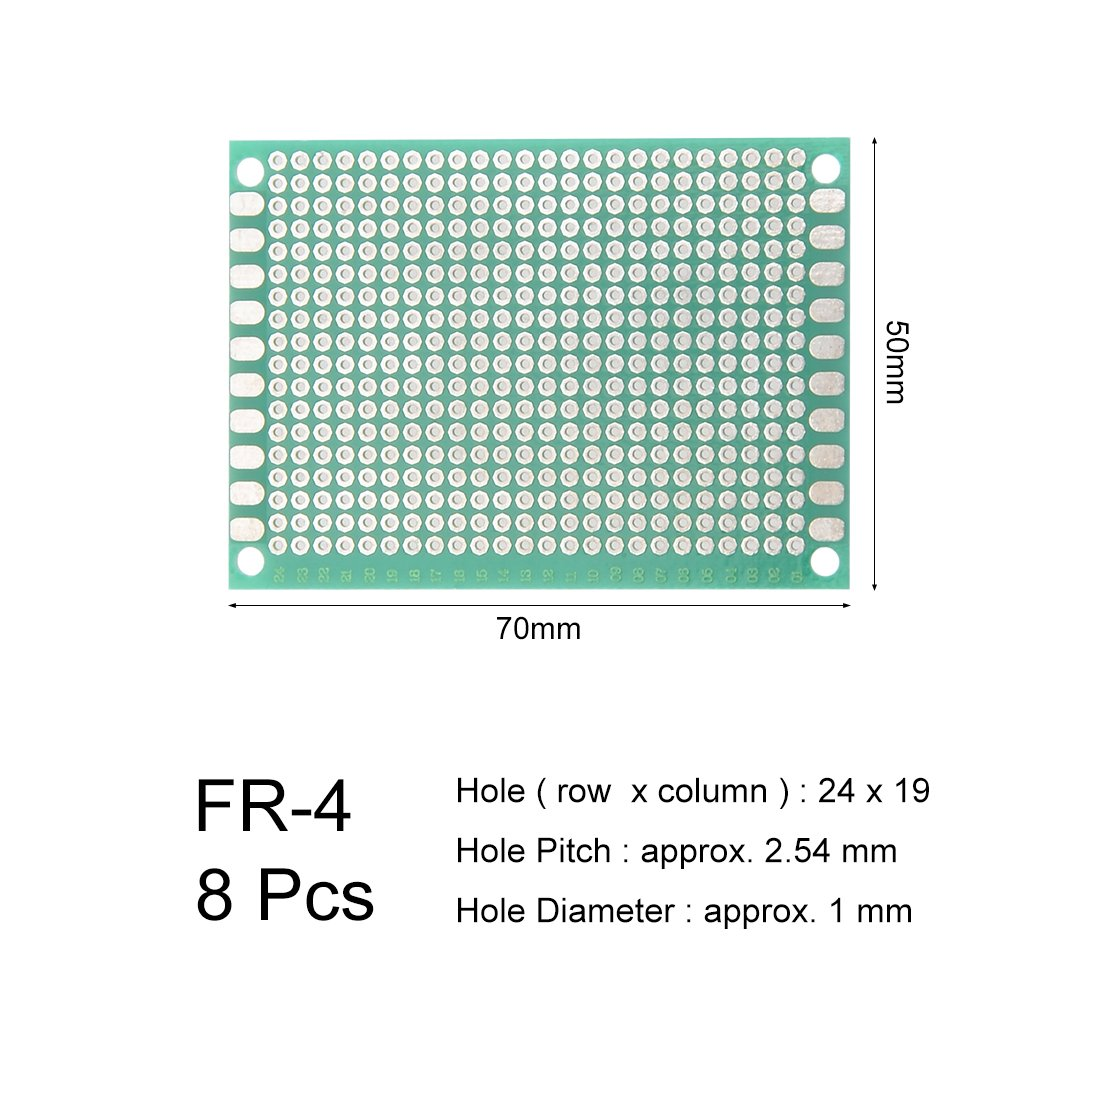 uxcell 10x15cm Single Sided Universal Printed Circuit Board for DIY Soldering 5pcs